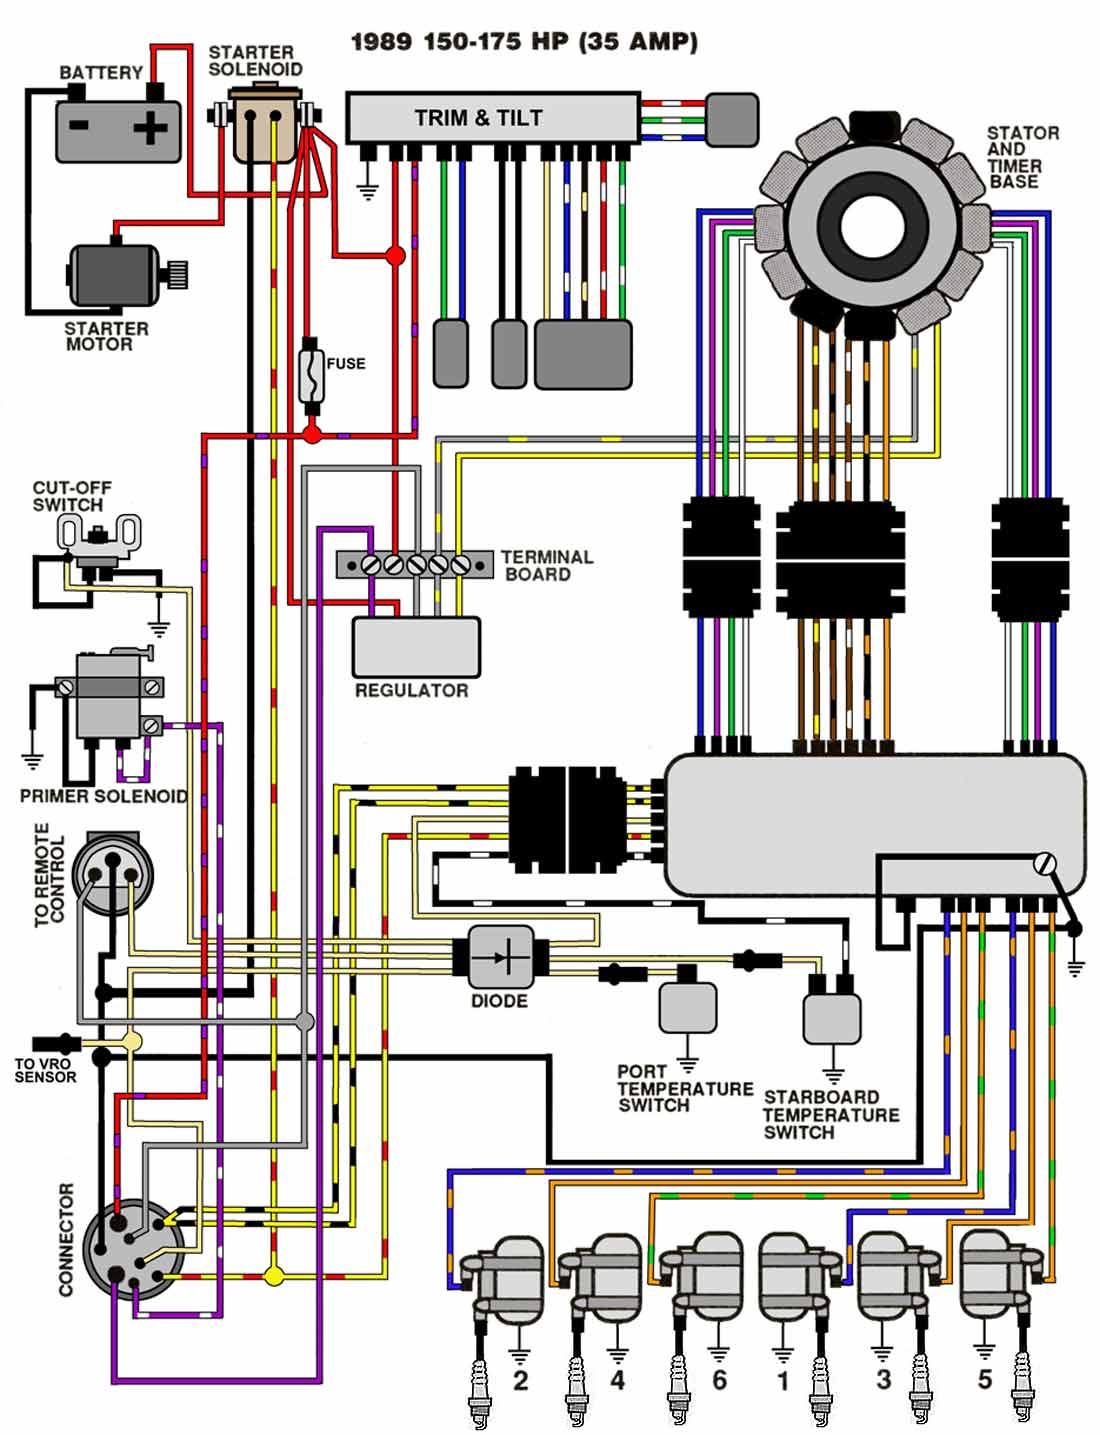 1989_89_150_175_35A  Yamaha Outboard Wiring Diagram on tilt trim gauge, parts meters speed, for 6hp, for tachometer, f25tlry,